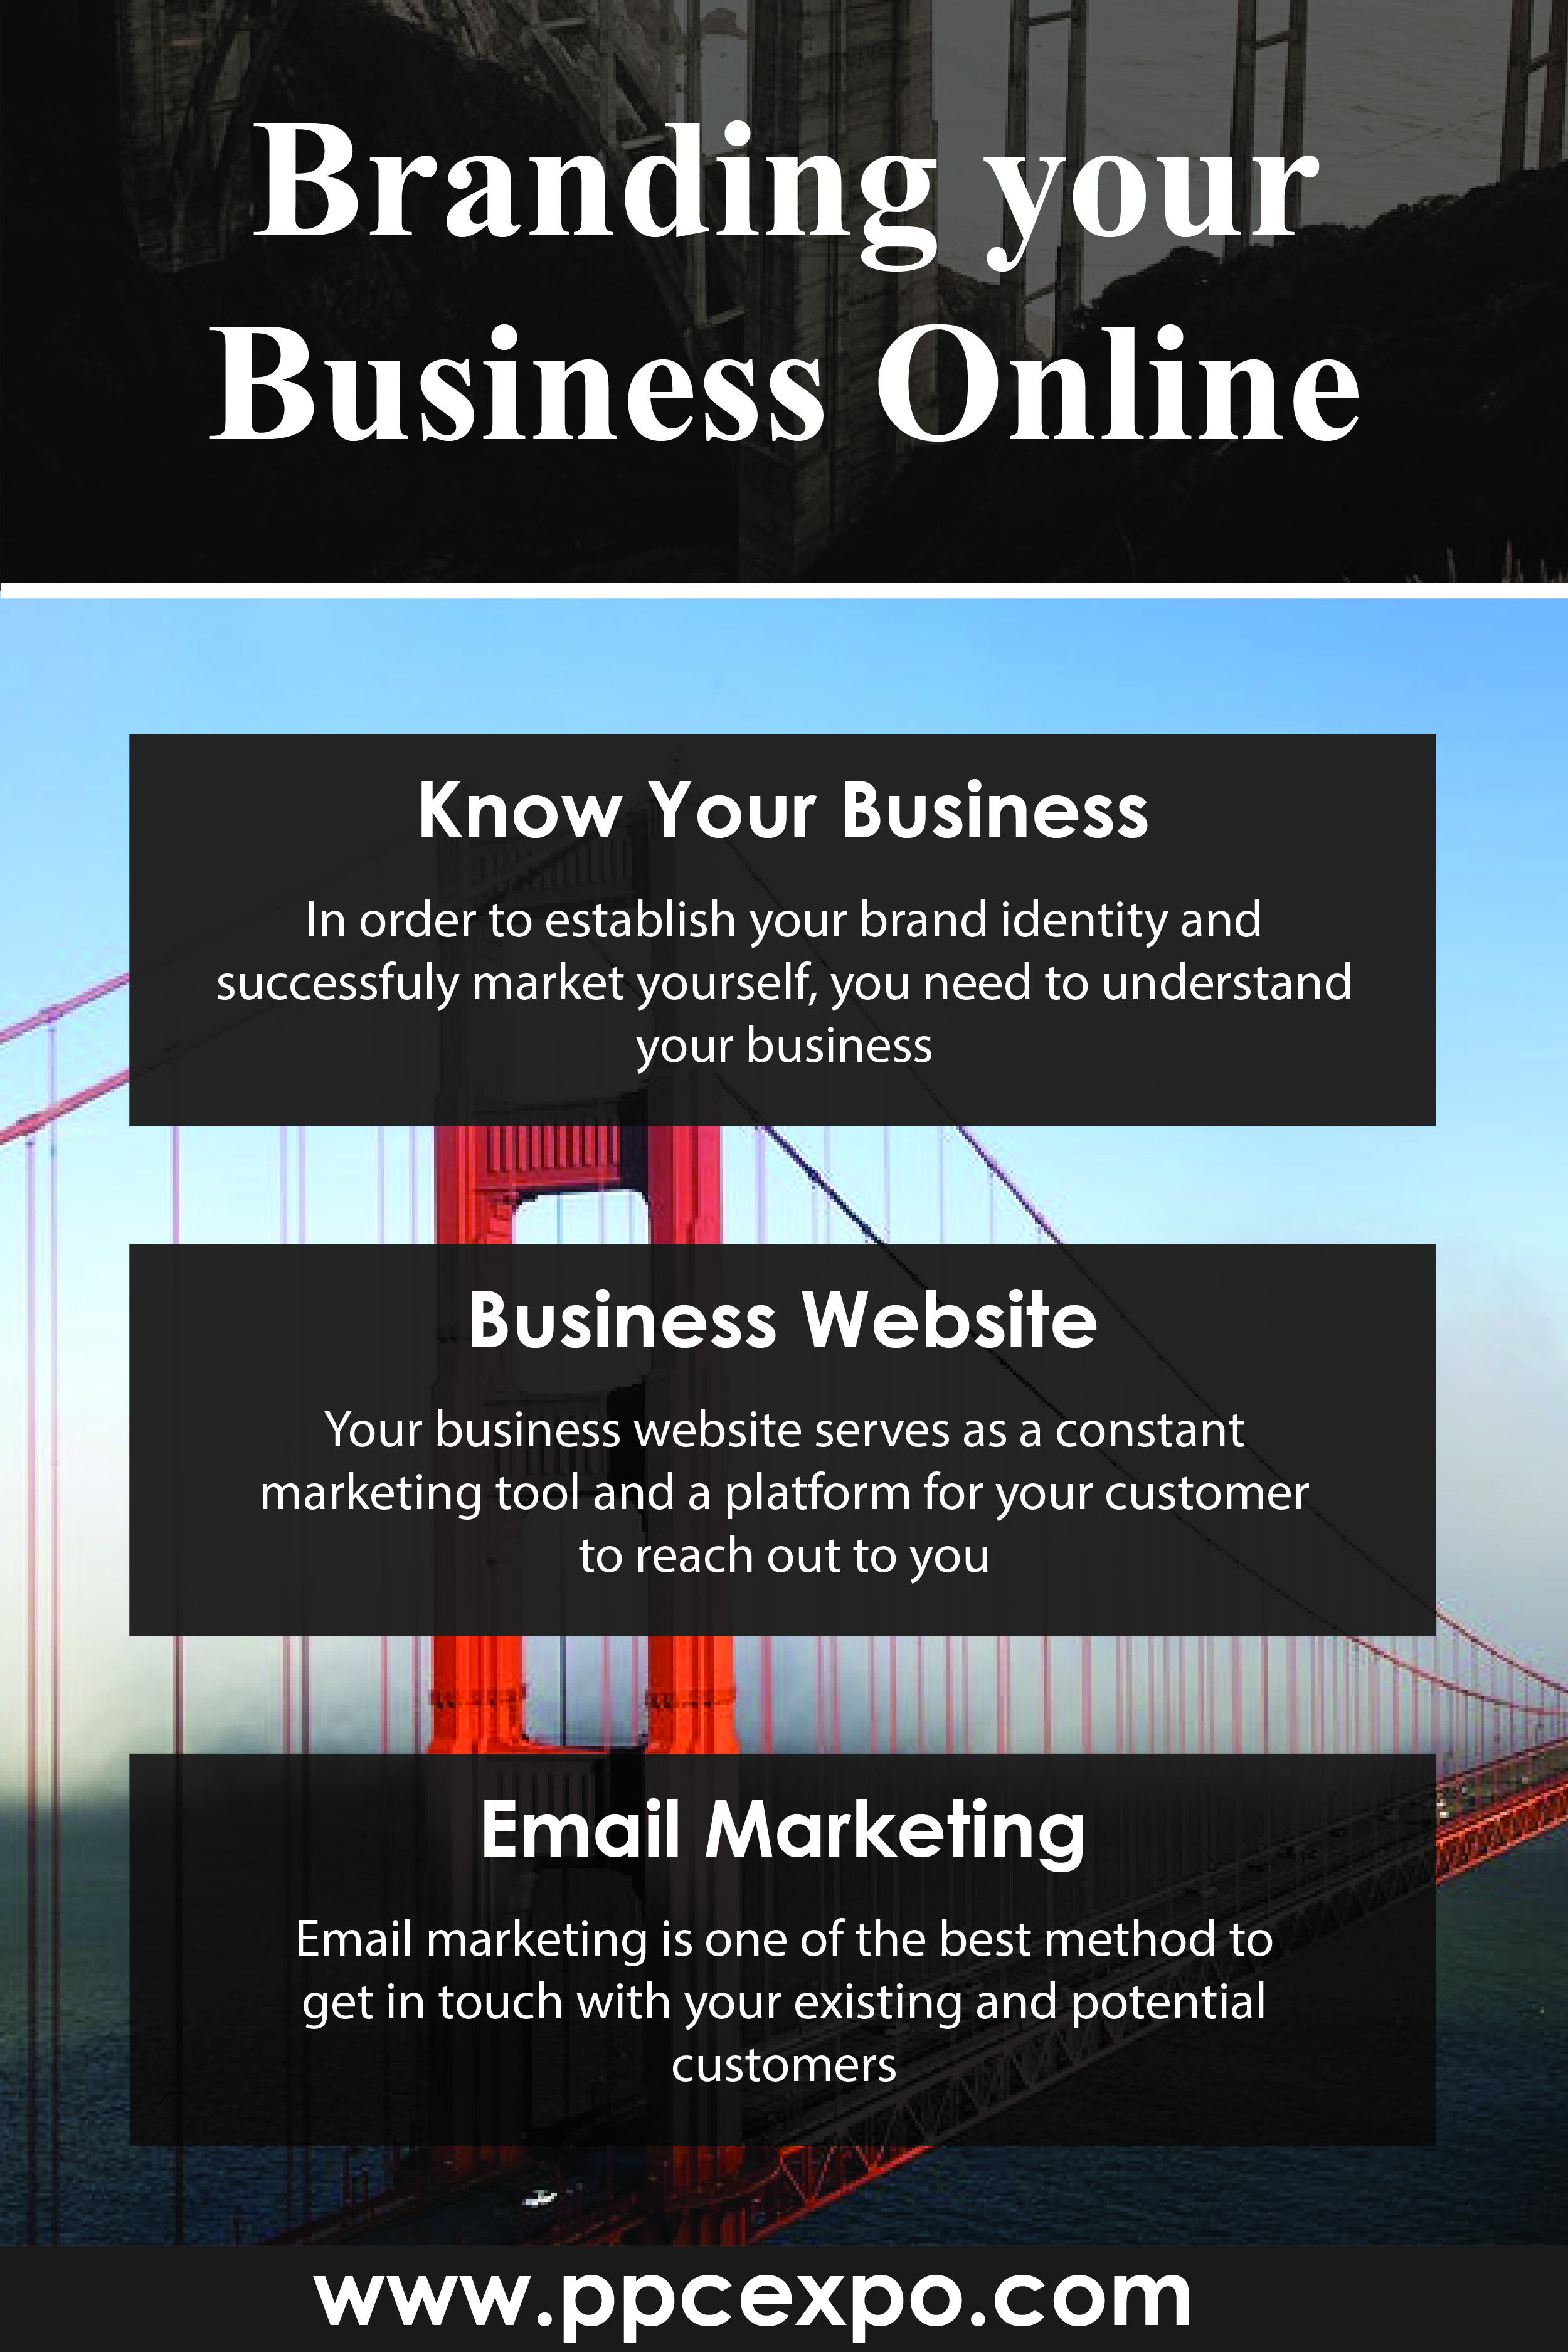 How To Brand Your Business Online How To Build A Brand Online In 2020 Infographic Marketing Digital Marketing Infographics Branding Your Business